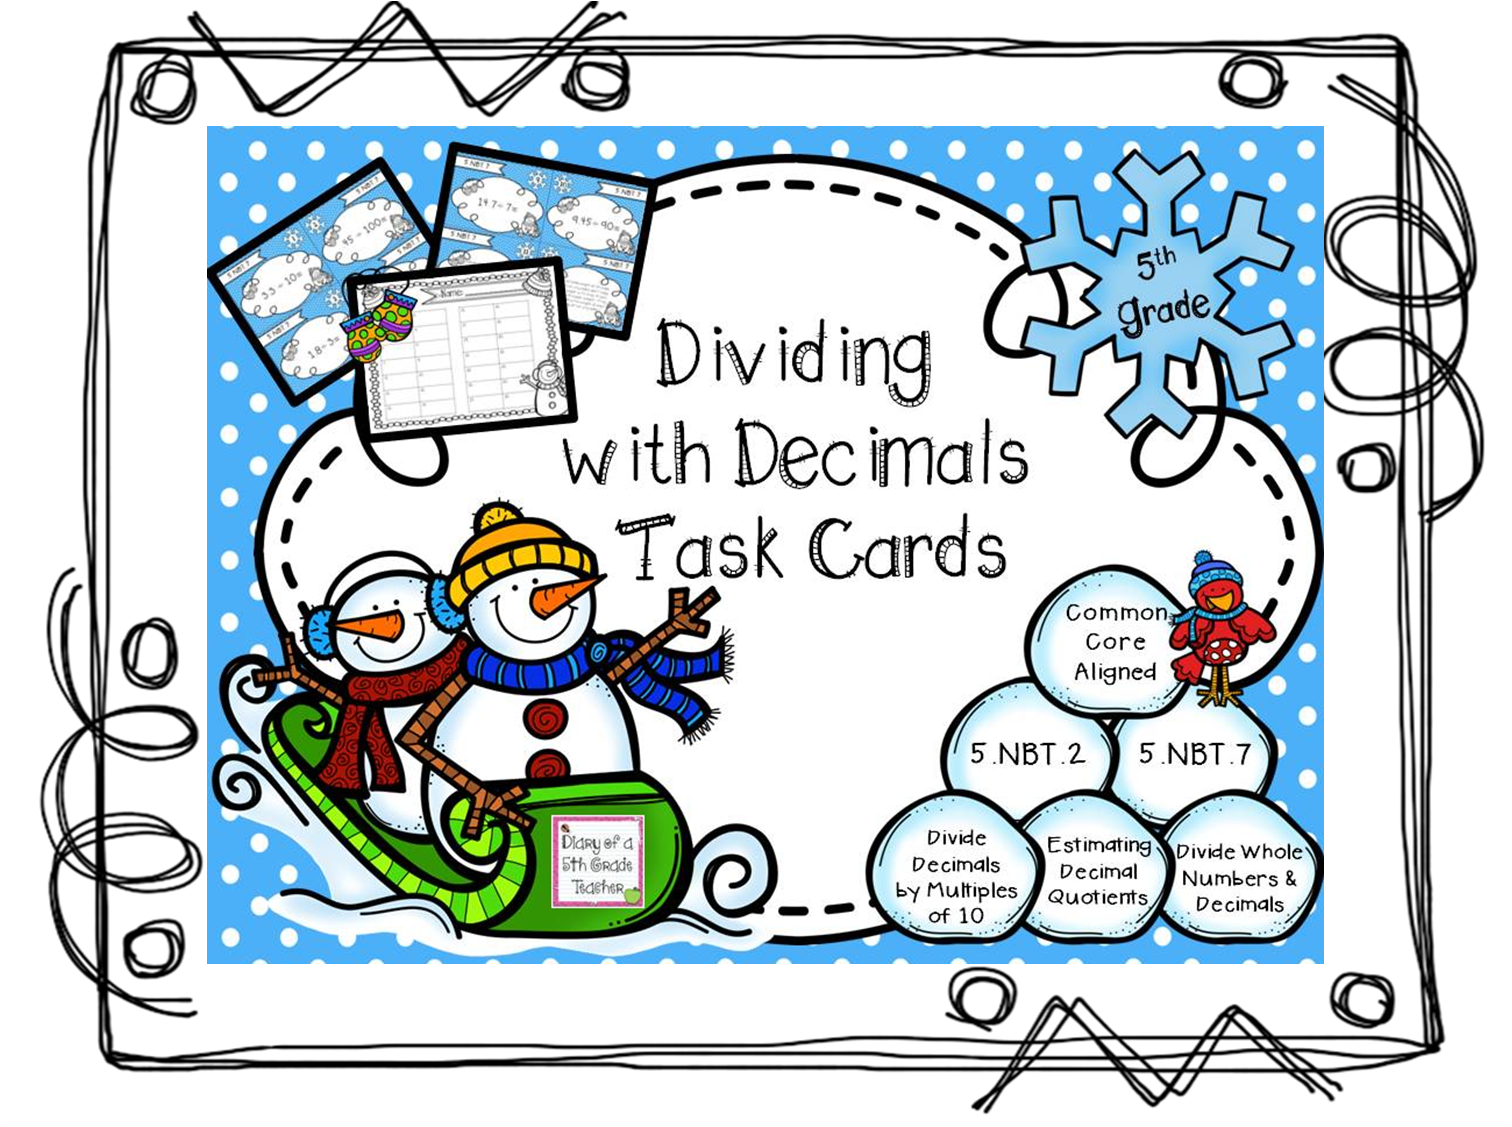 worksheet Dividing Decimals diary of a 5th grade teacher dividing decimals these task cards cover the following with multiples 10 100 1000 estimating quotients and whol